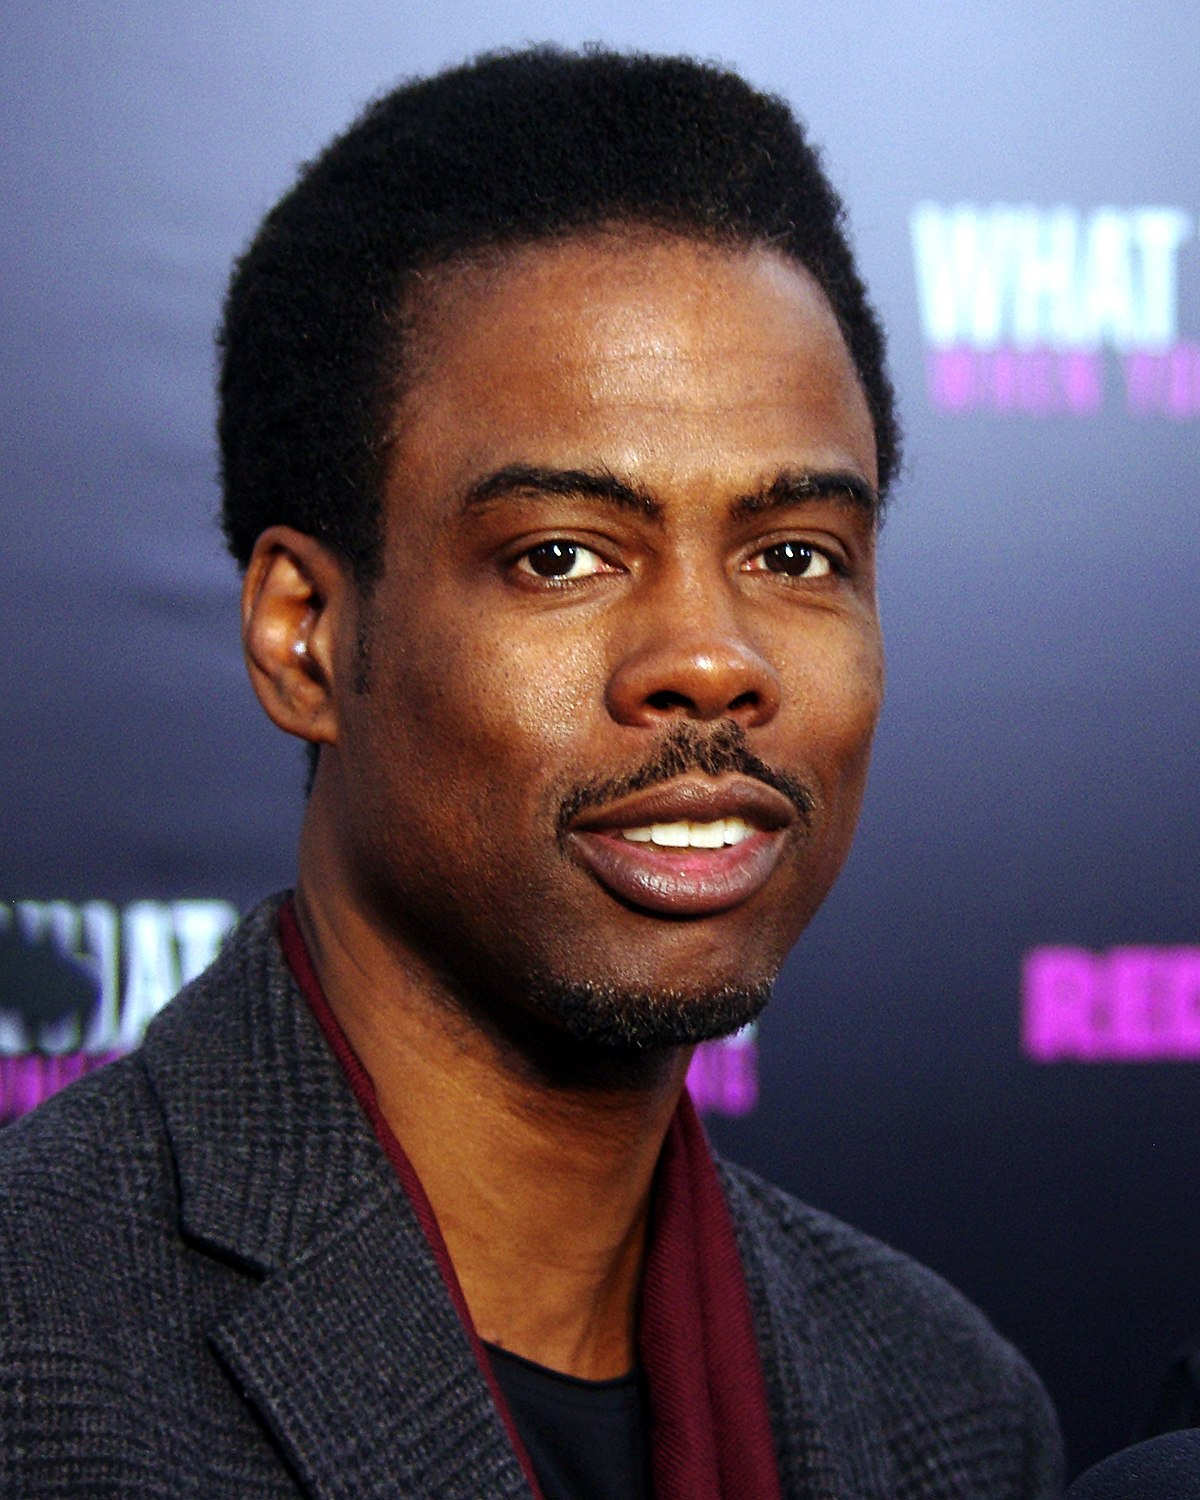 Oscars: US comedian Chris Rock returns to host 2016 Academy Awards